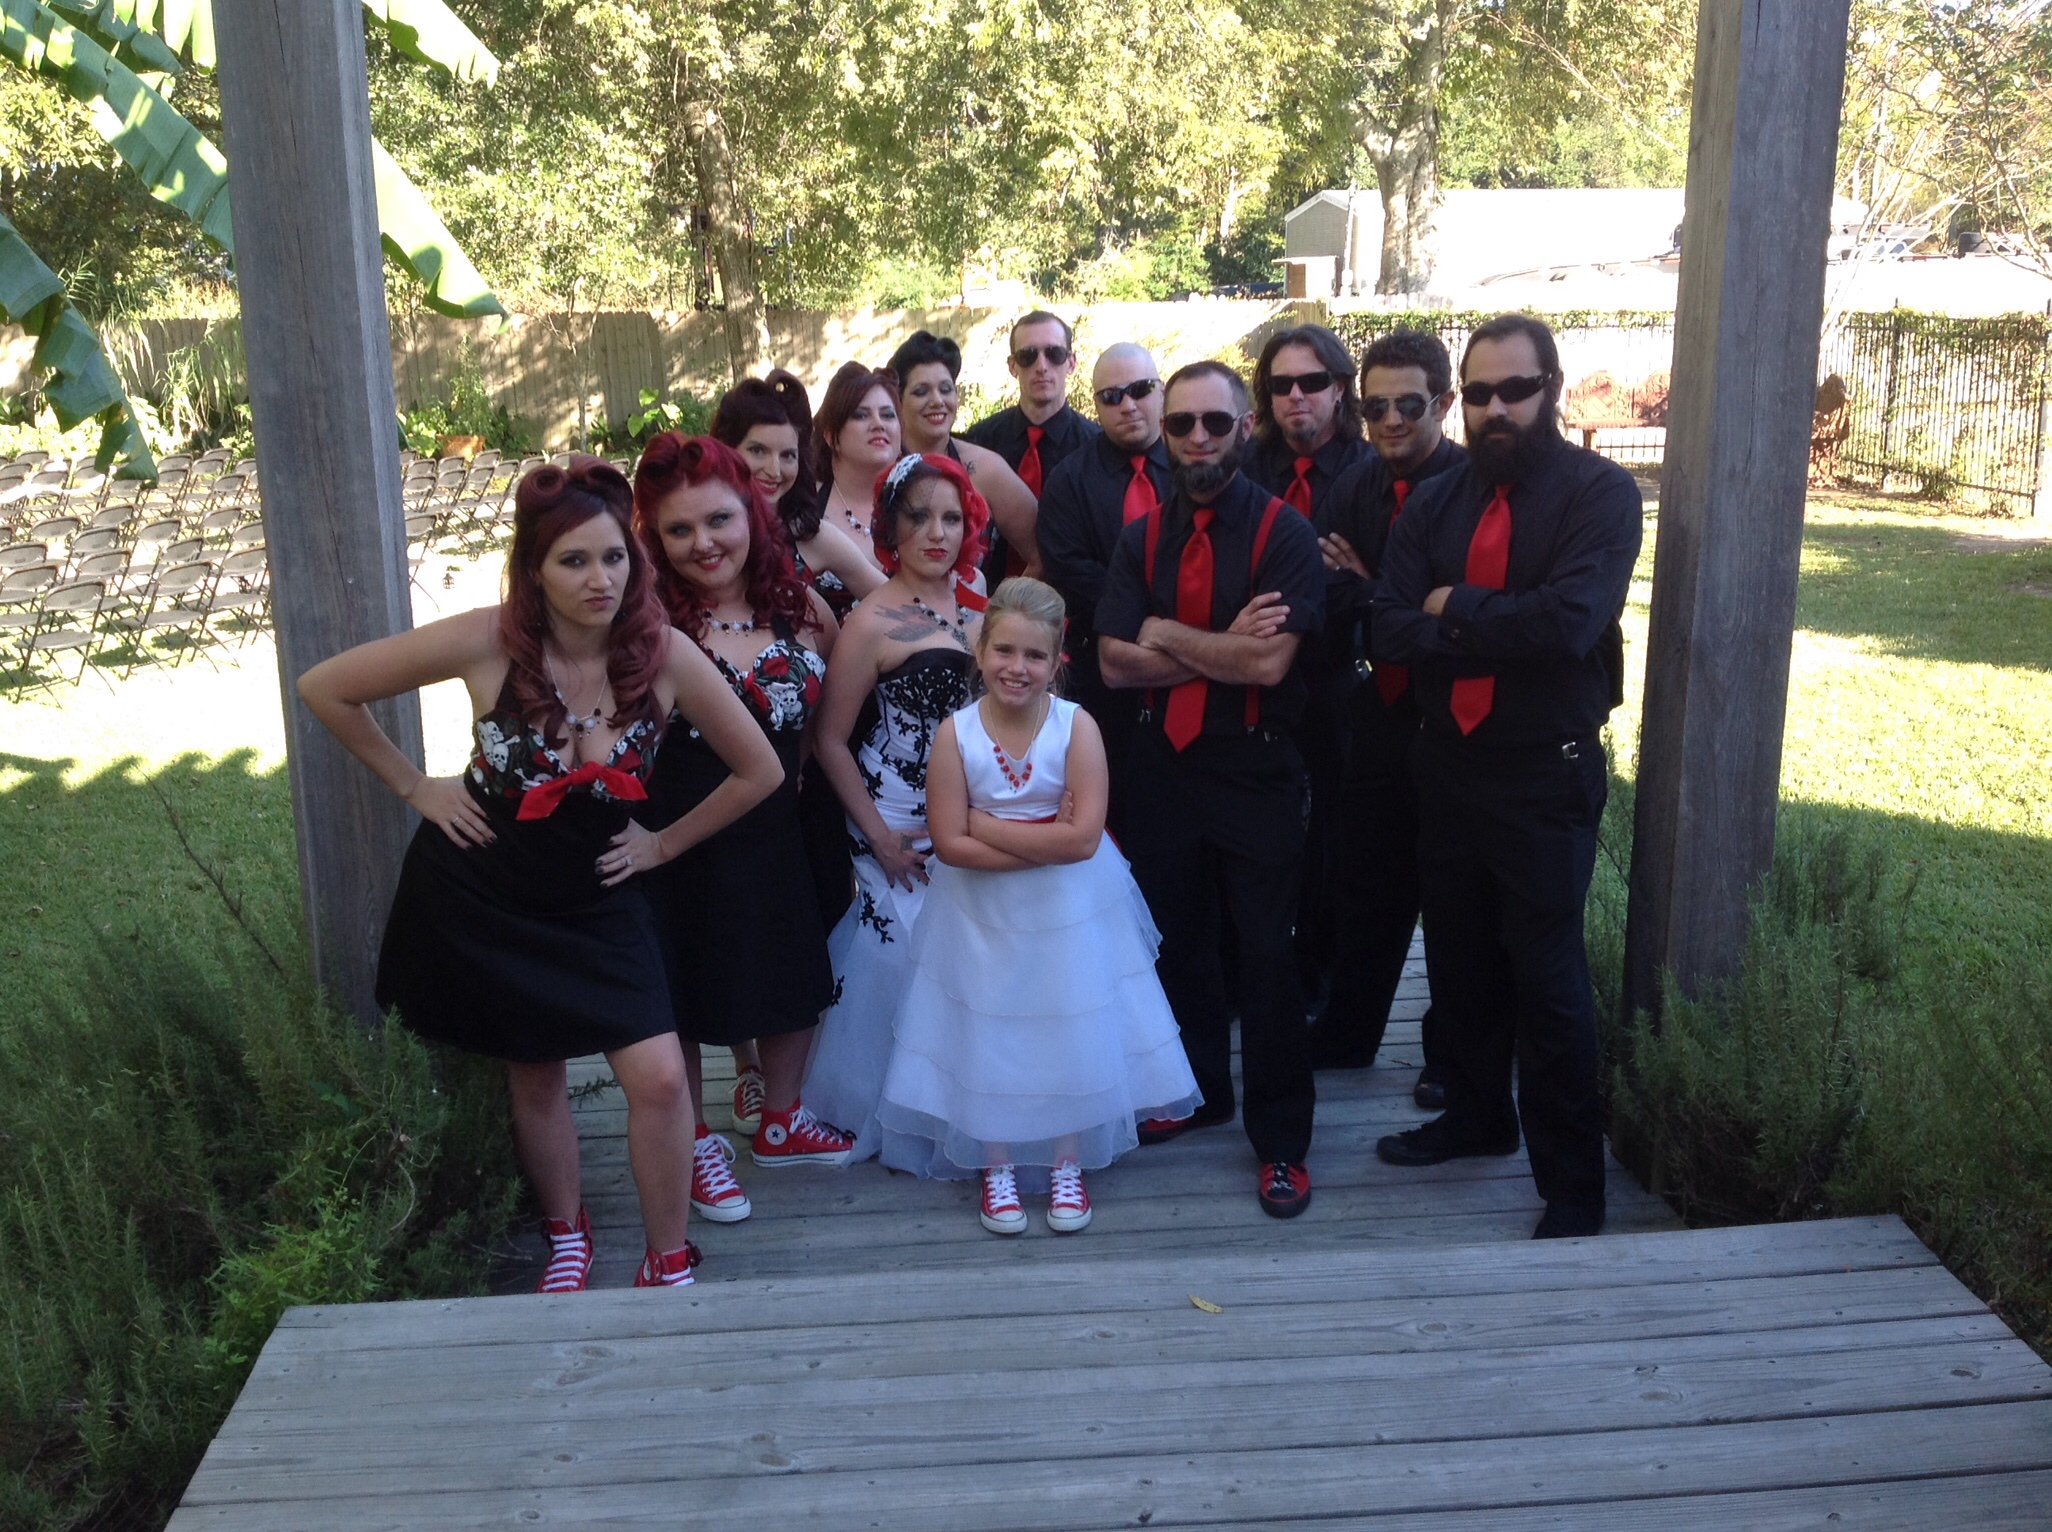 Ashley and Andrew wedding party photo for Halloween wedding at Magnolia Court Reception Hall.